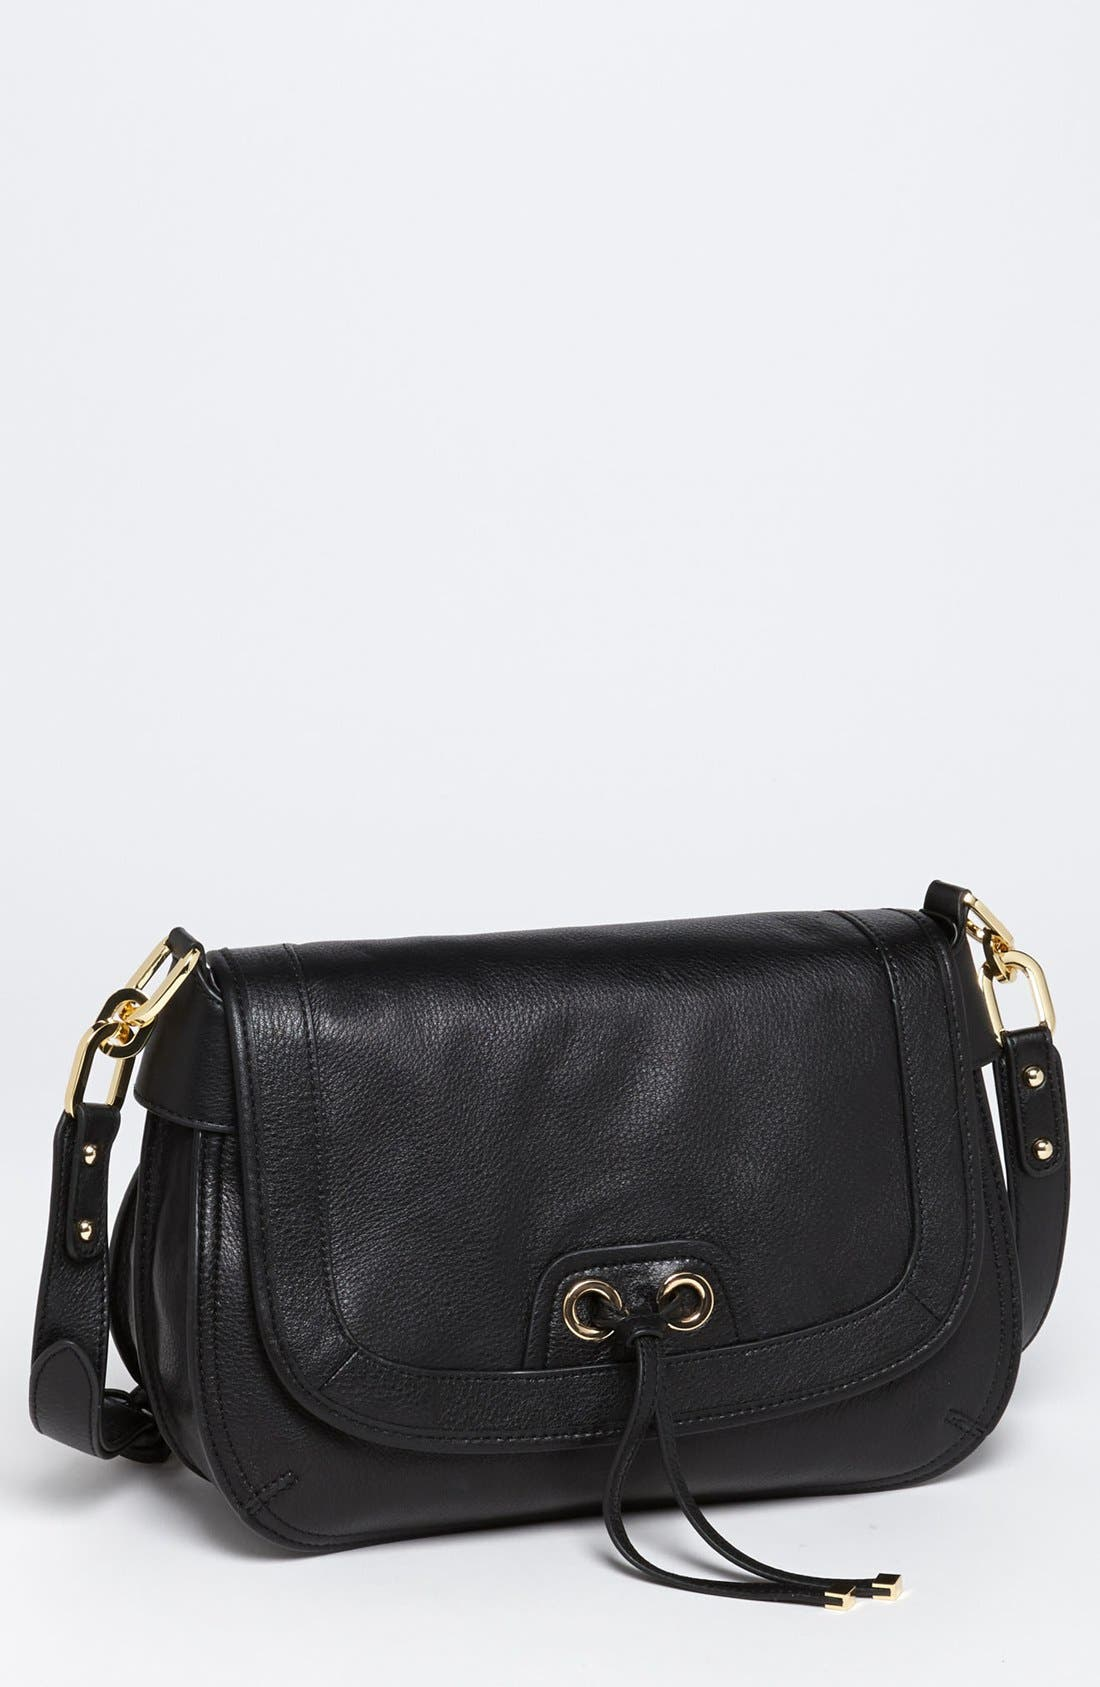 Alternate Image 1 Selected - Perlina 'Simone' Leather Crossbody Bag